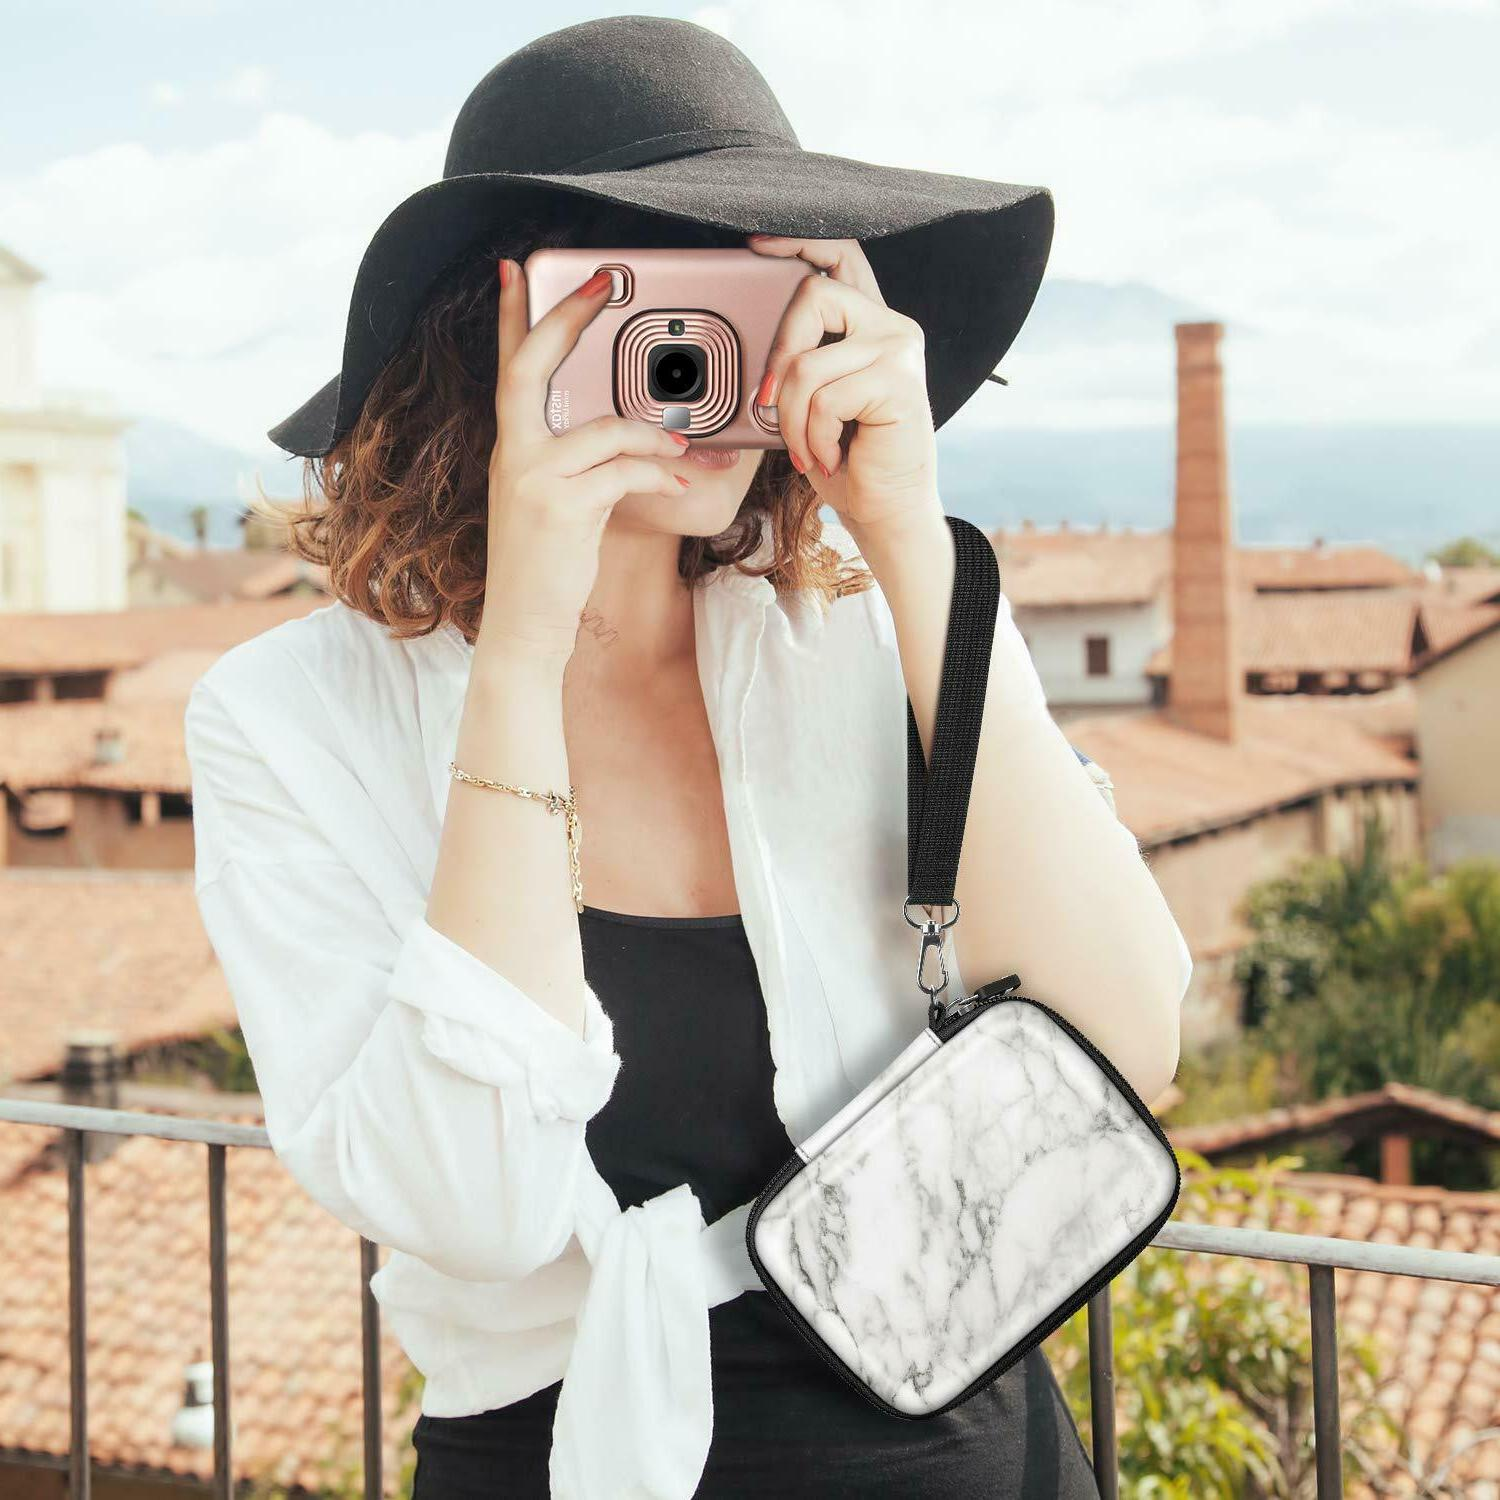 Carrying Case Fujifilm Instax Shockproof Bag